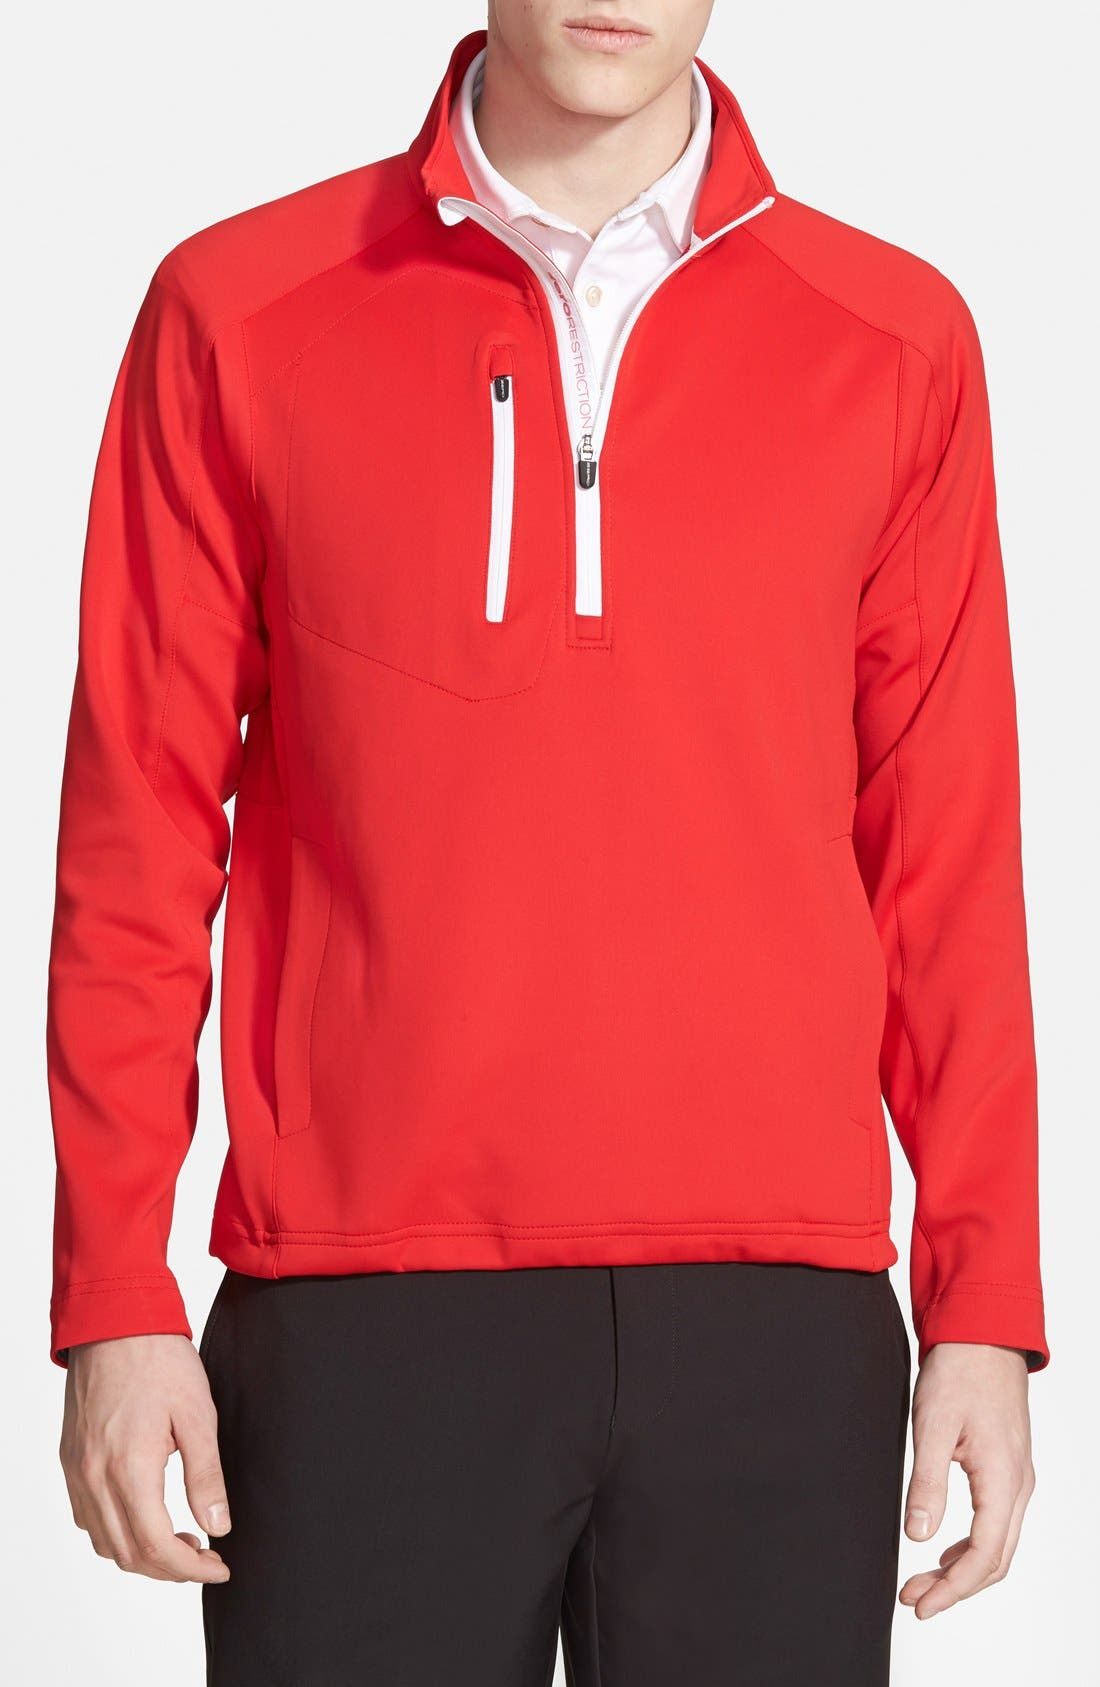 Alternate Image 1 Selected - Zero Restriction 'Z500' Water Resistant Quarter Zip Pullover